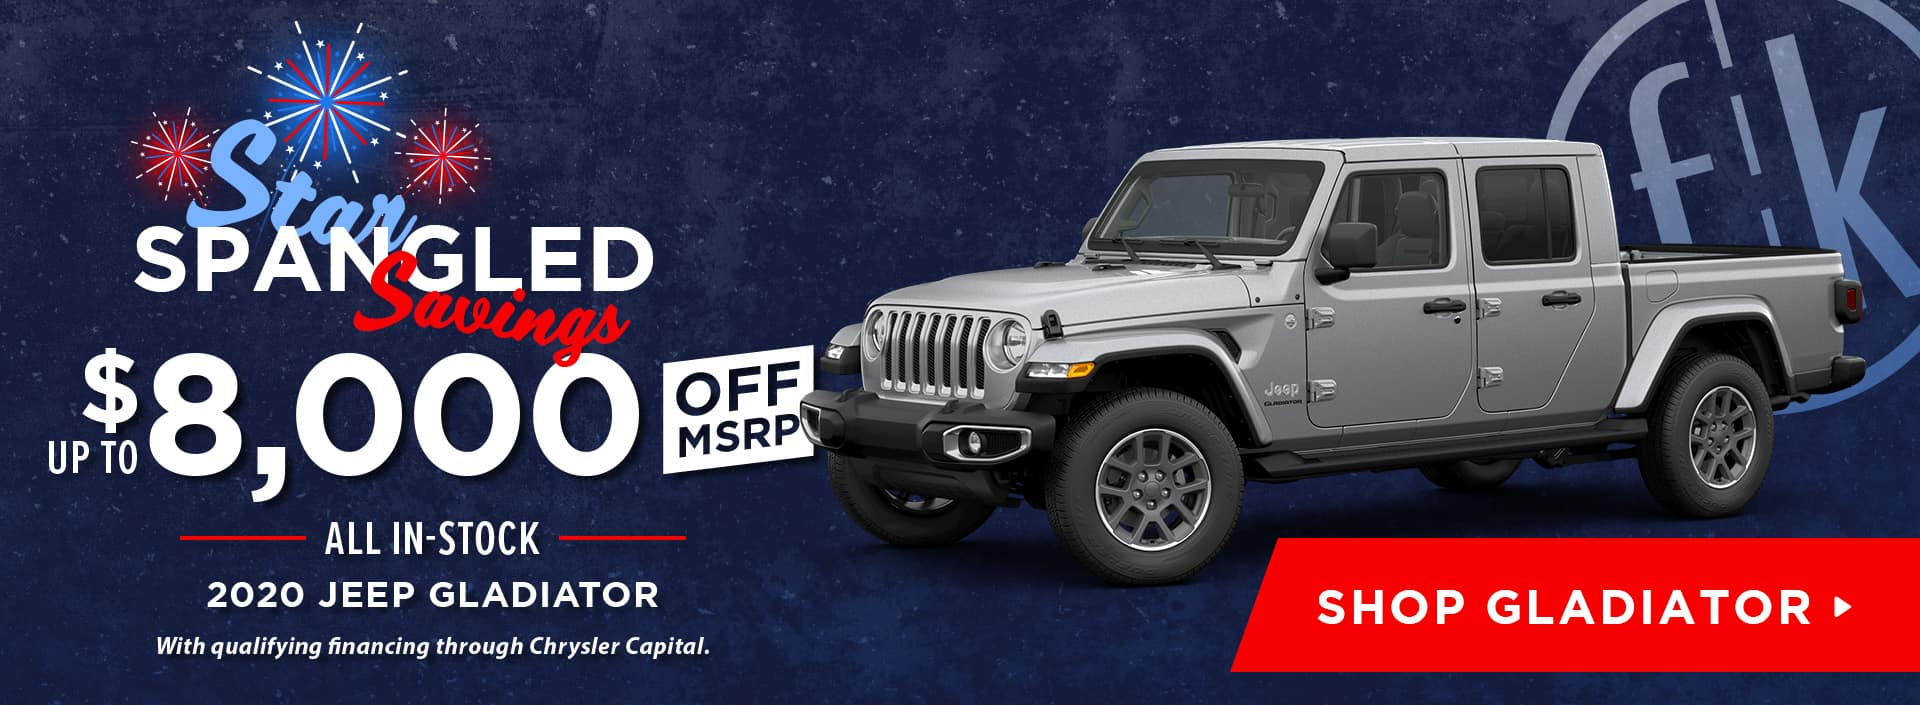 Up To $8,000 Off All In-Stock 2020 Jeep Gladiators